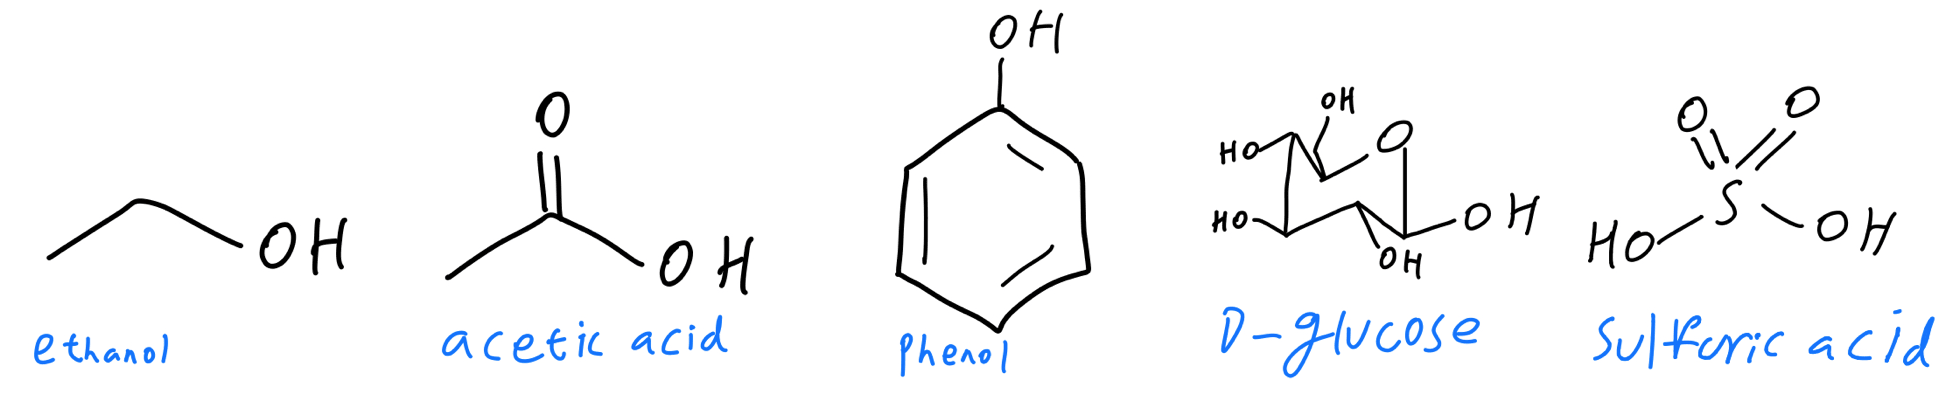 Unlabeled hydroxyl groups